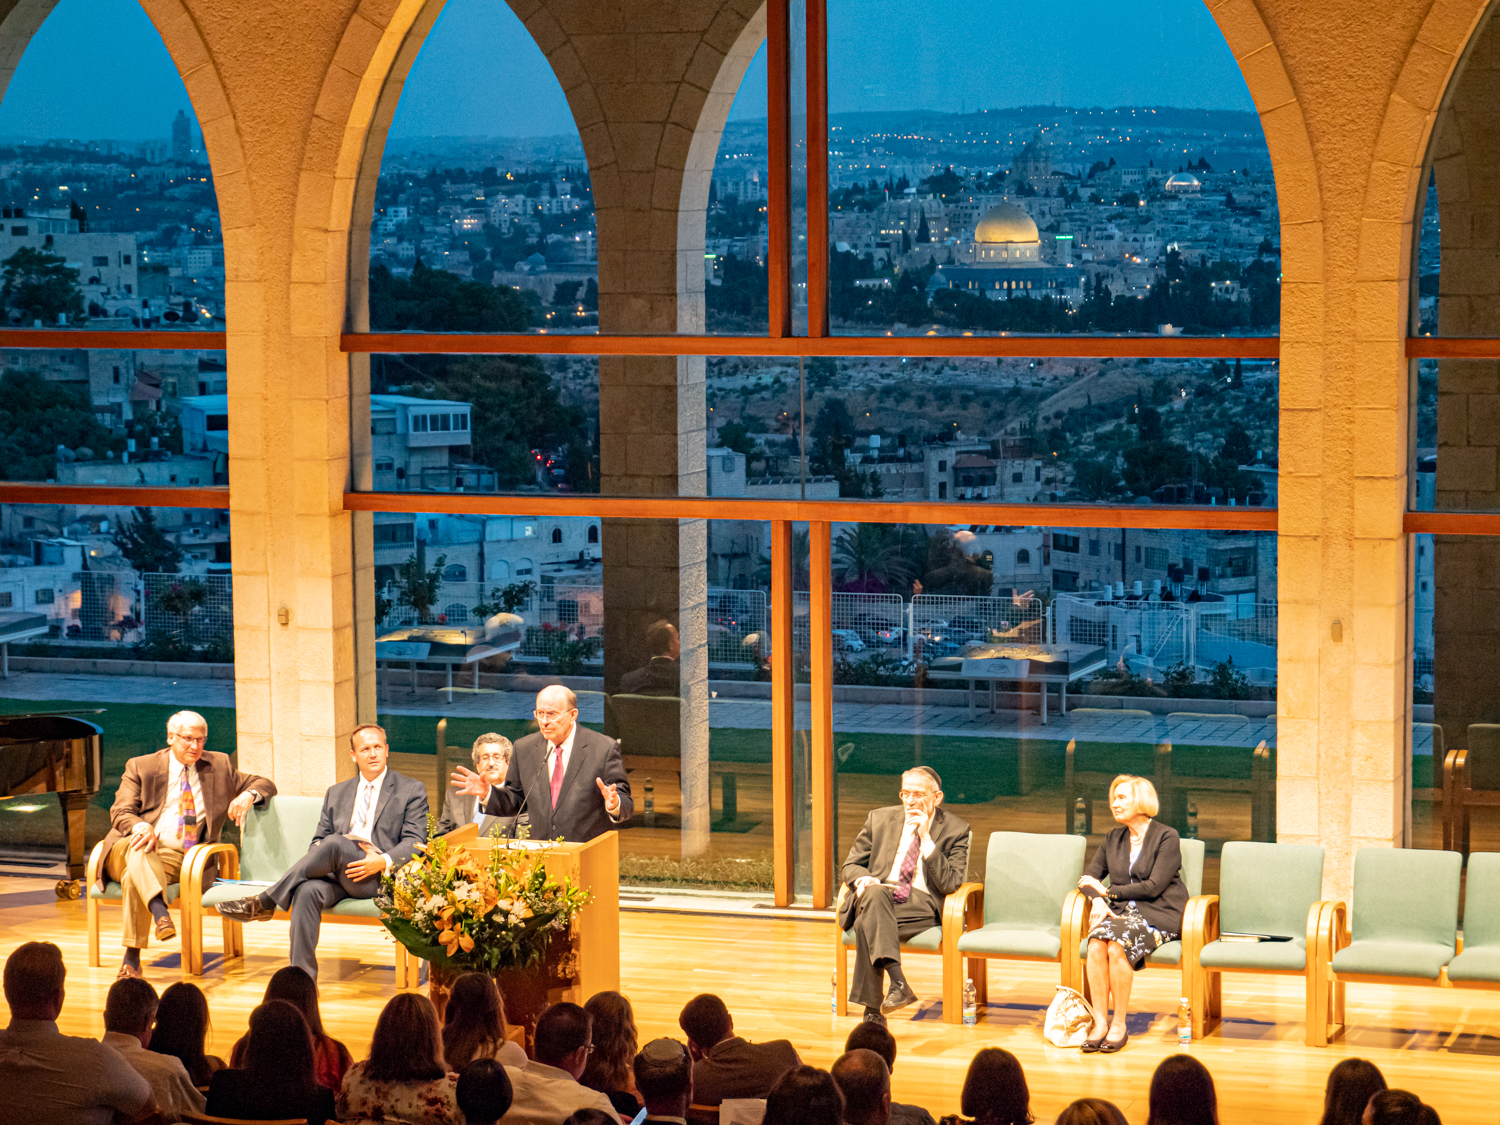 Elder Quentin L. Cook speaks to a group of Latter-day Saint and Jewish scholars about the importance of interfaith dialogue to build understanding and respect. The meeting was held at the BYU Jerusalem Center on June 5